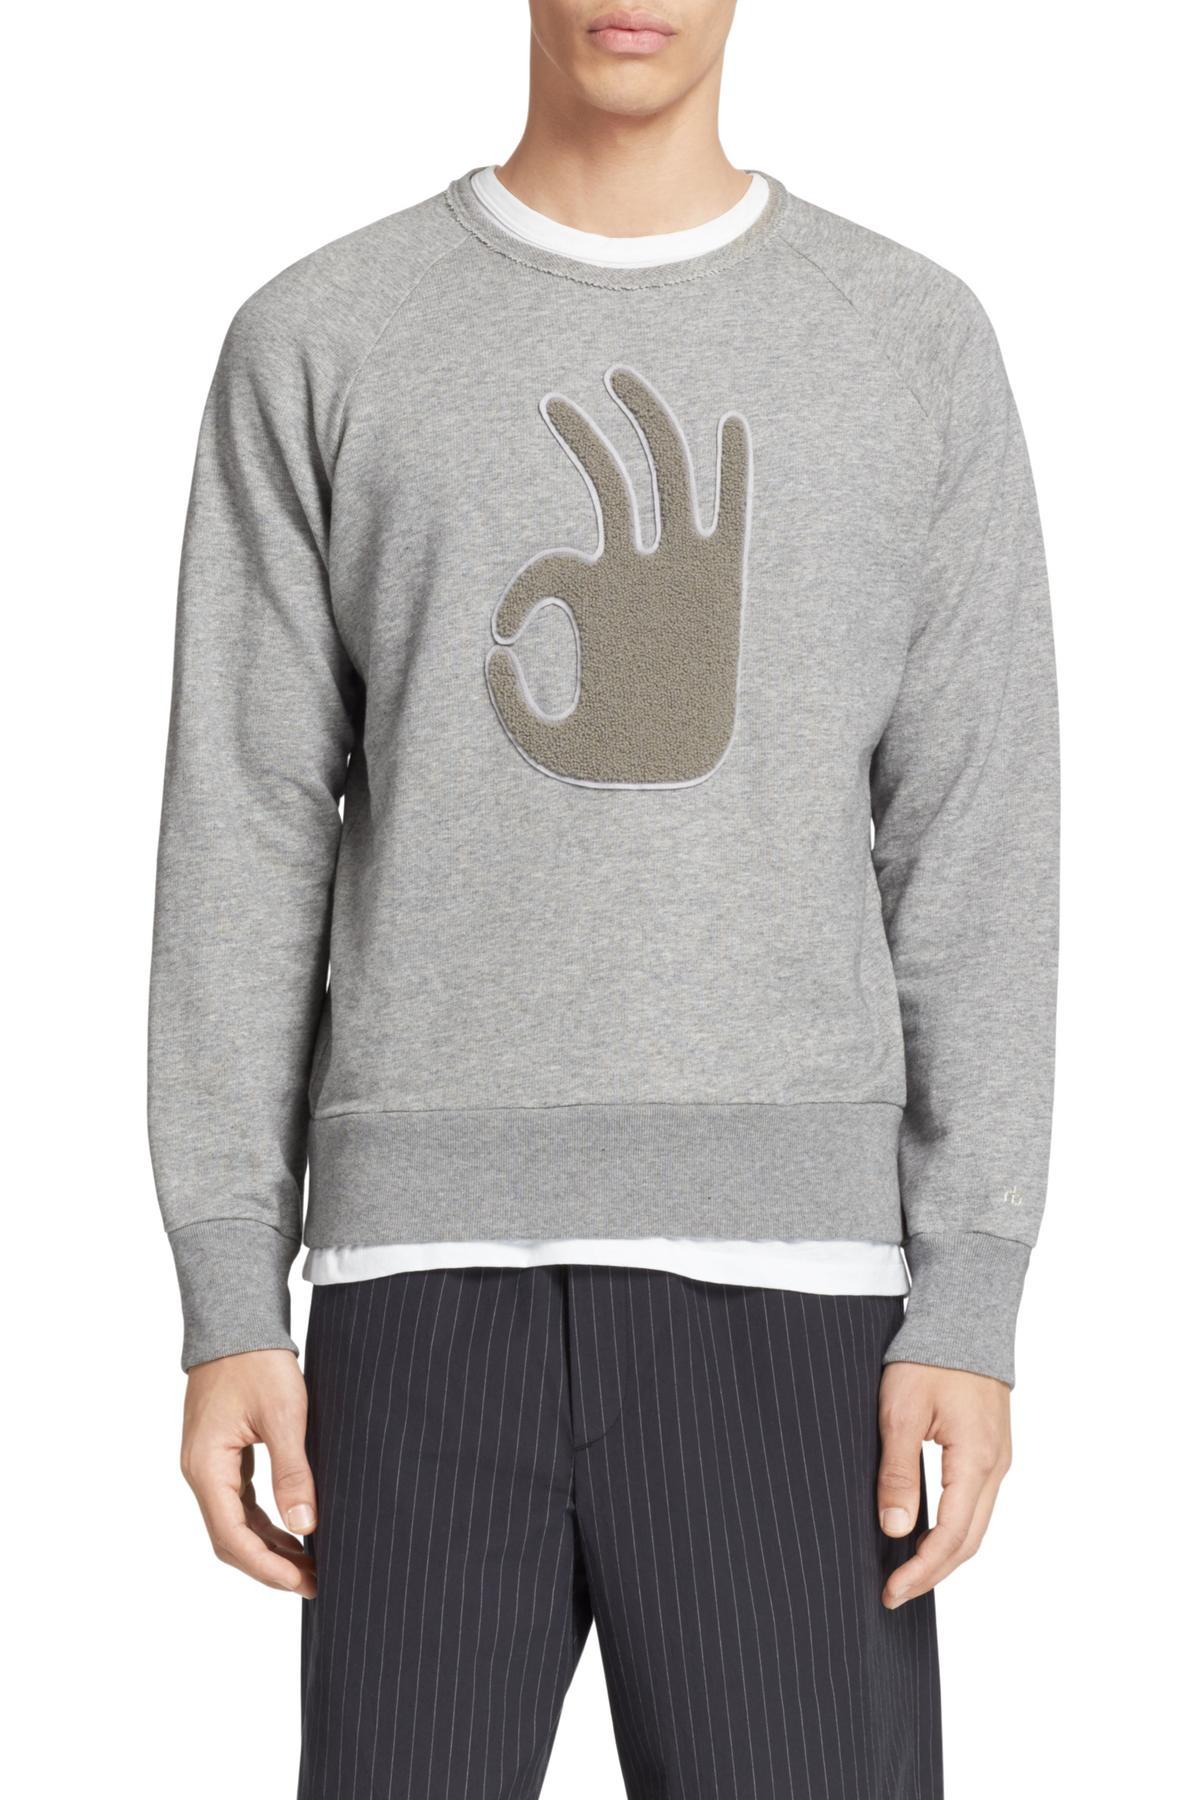 RAG & BONE OKAY SWEATSHIRT